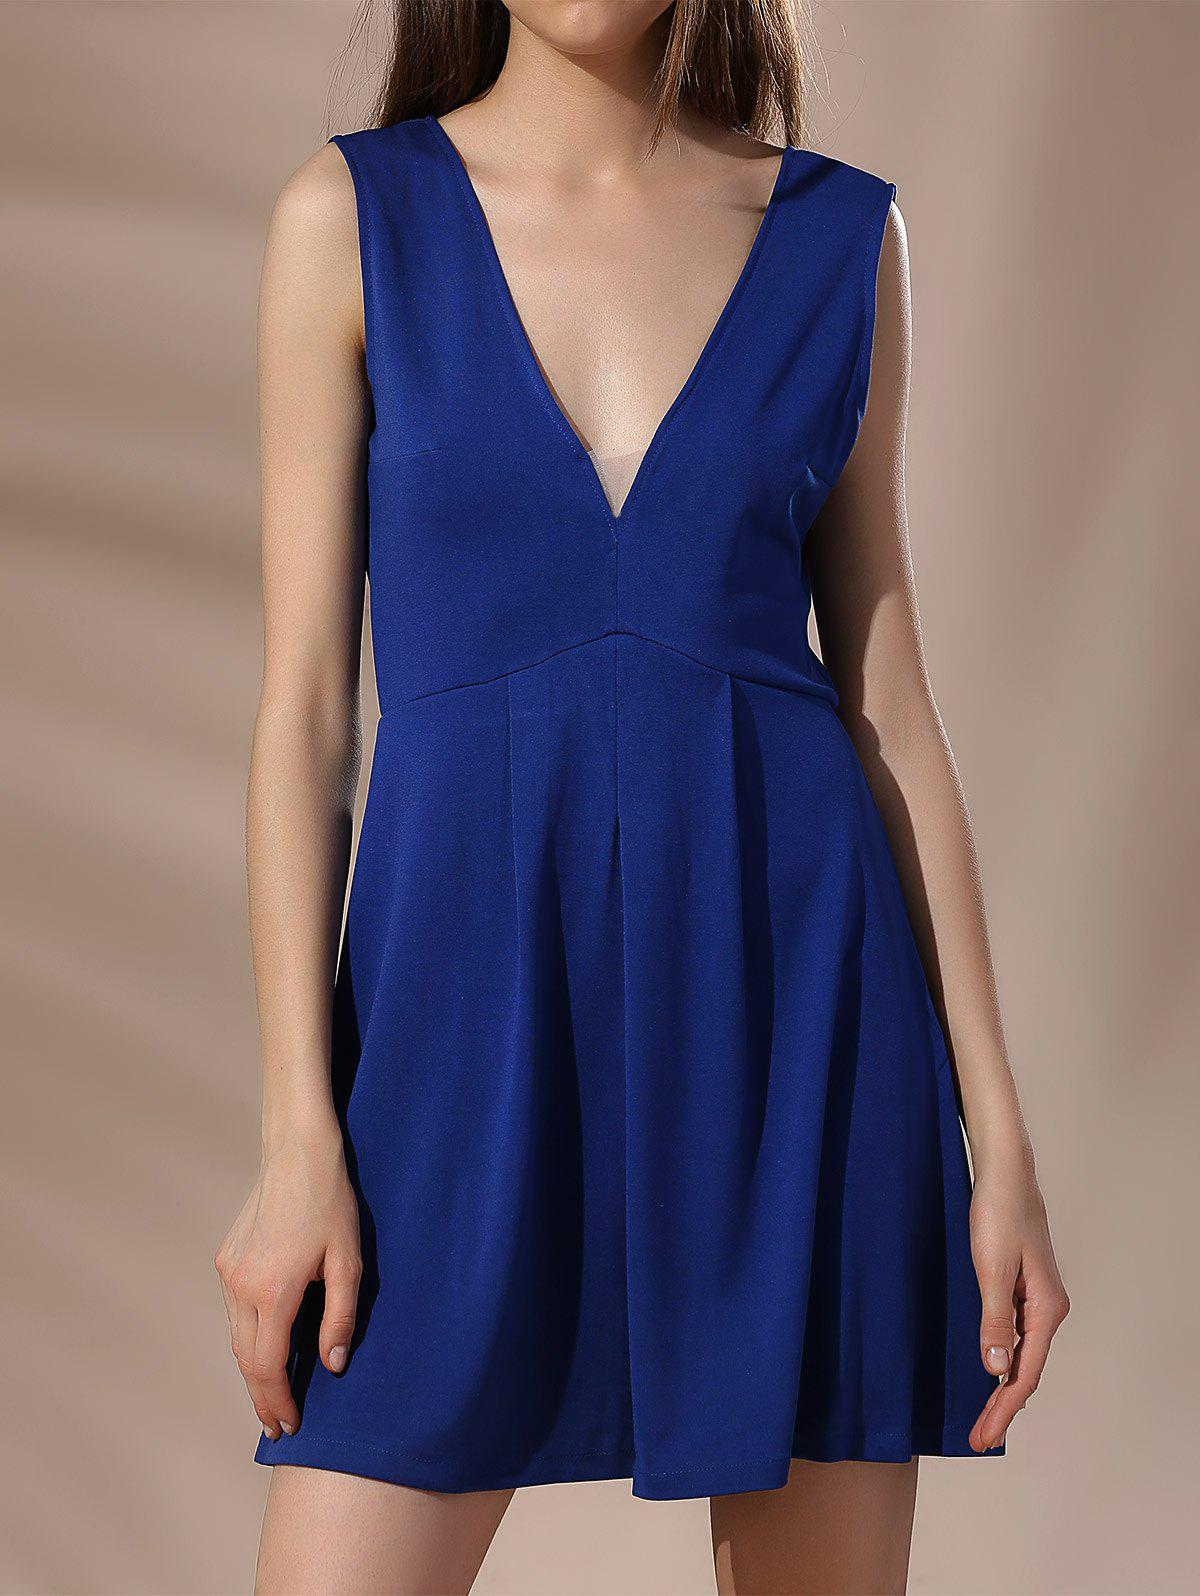 Mini Low Cut Backless A Line Dress - BLUE M